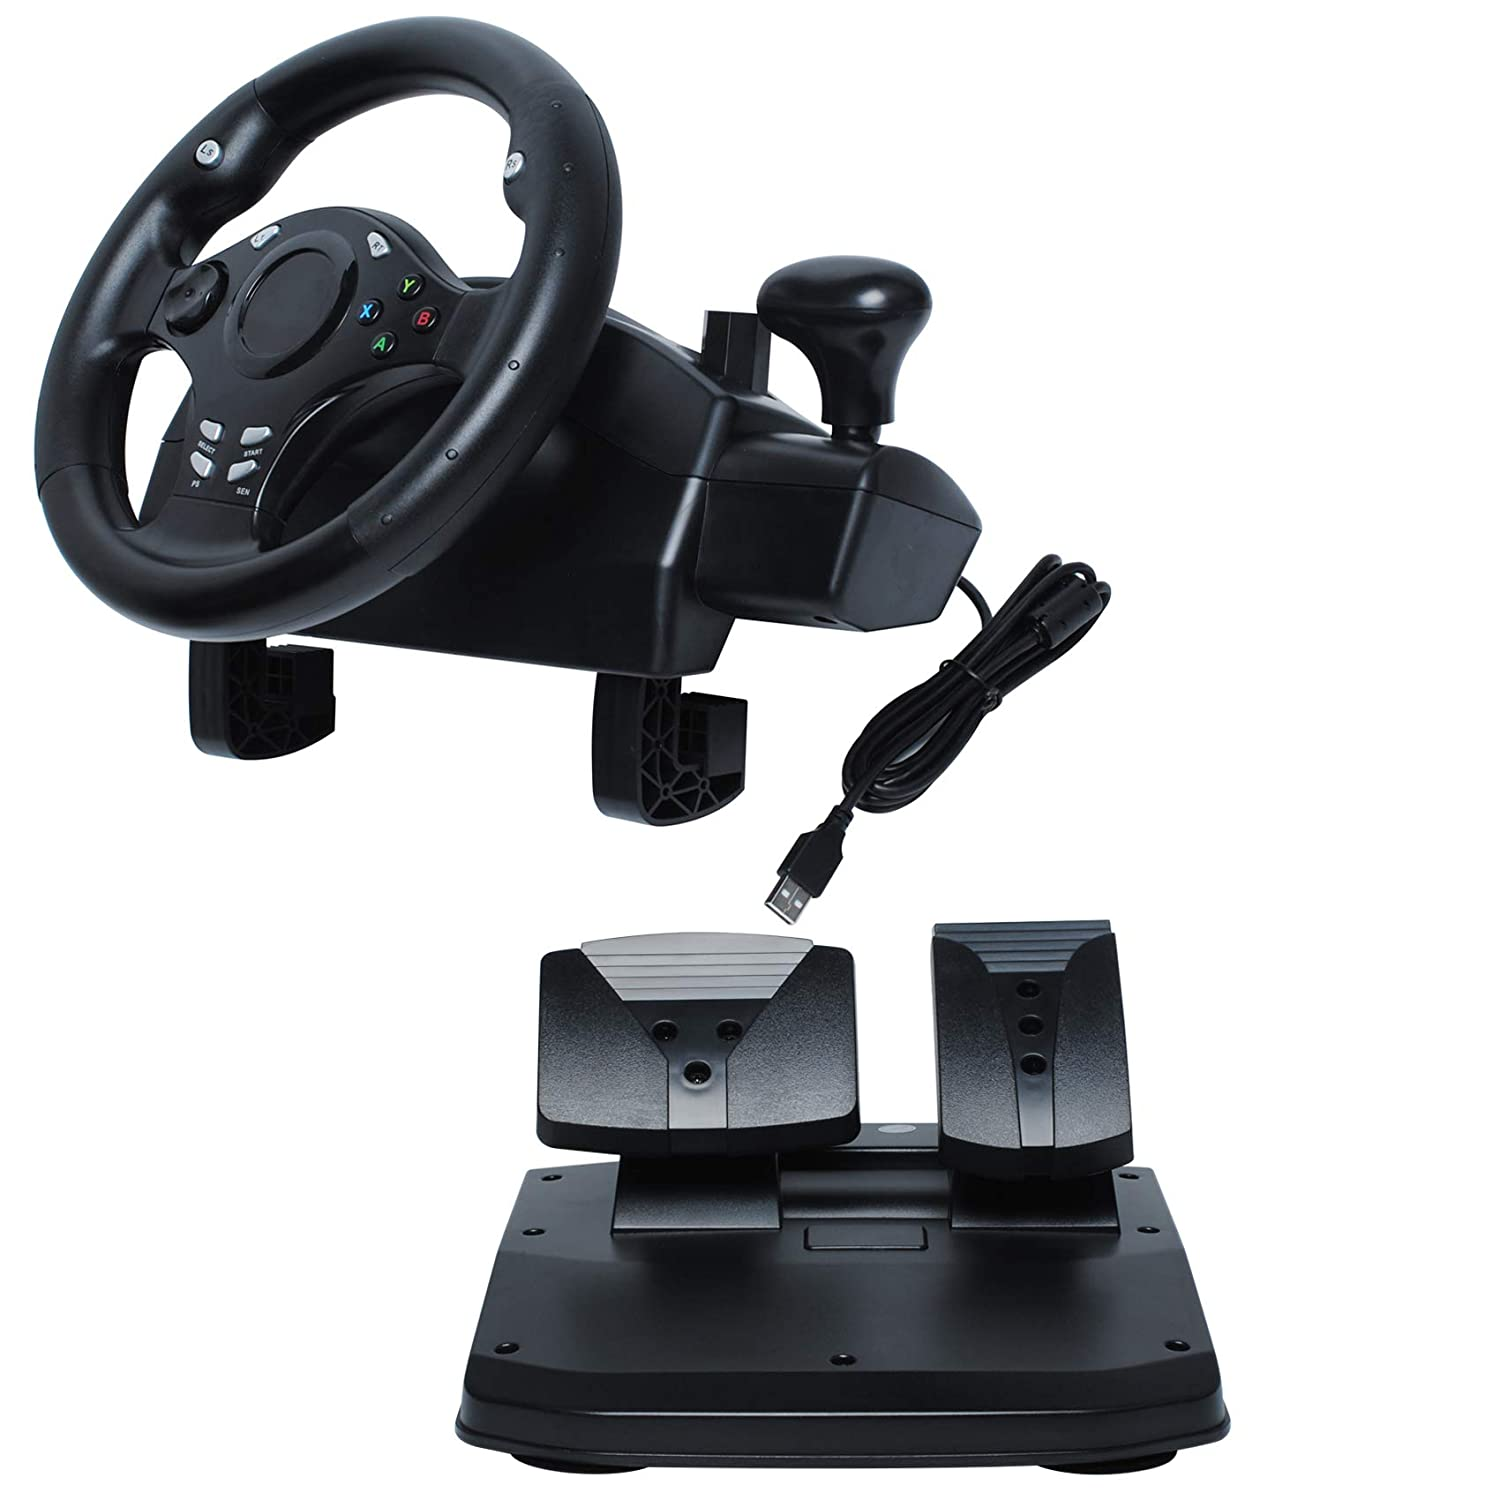 R270 Degree Gaming Racing Steering Pedals Wheel w for Max 83% OFF compatibl Direct sale of manufacturer